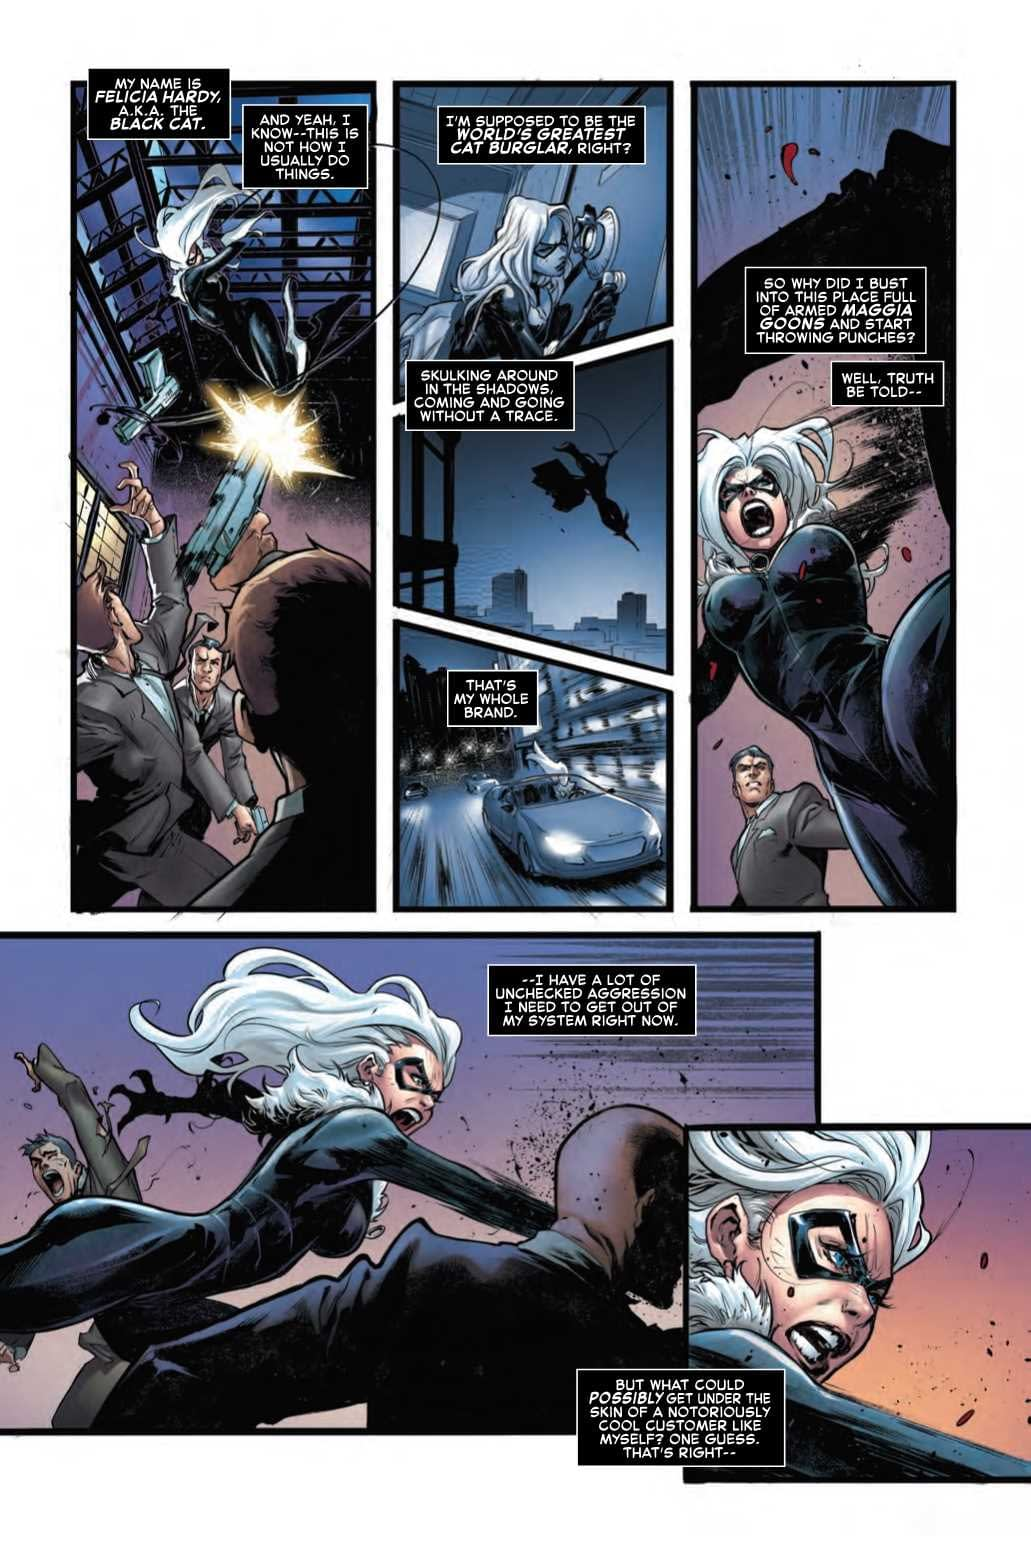 Black Cat Having Sex Dreams About Spider-Man in Next Week's Amazing